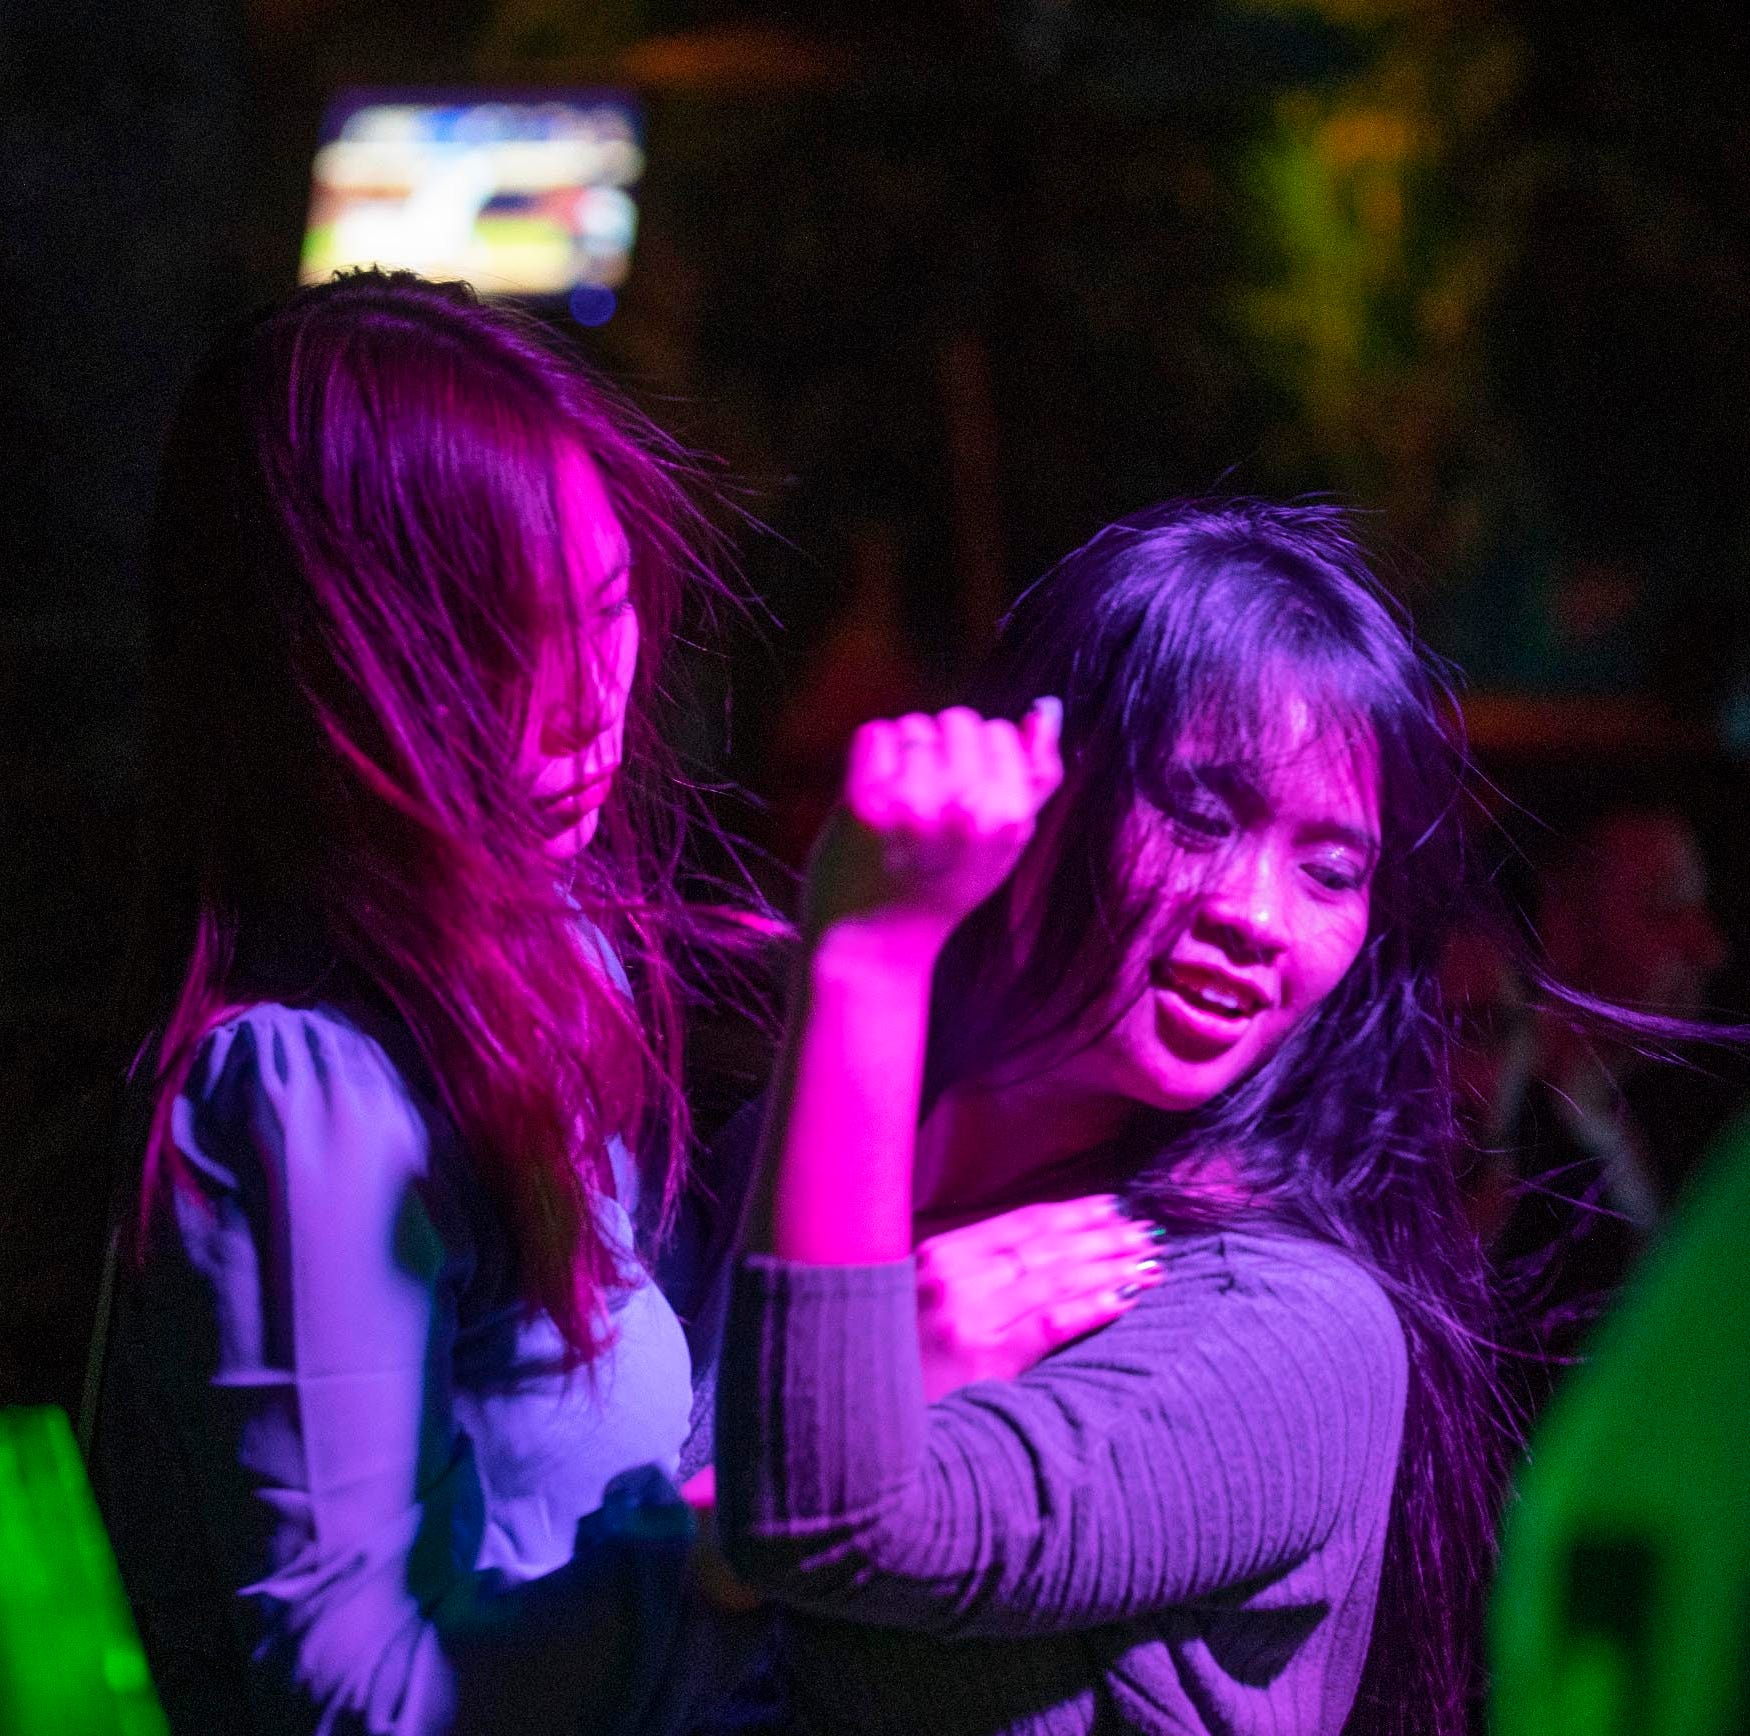 Bamboo Bar in Seaside Heights: Brawls, wet T-shirts, lawsuits at MTV 'Jersey Shore' hangout